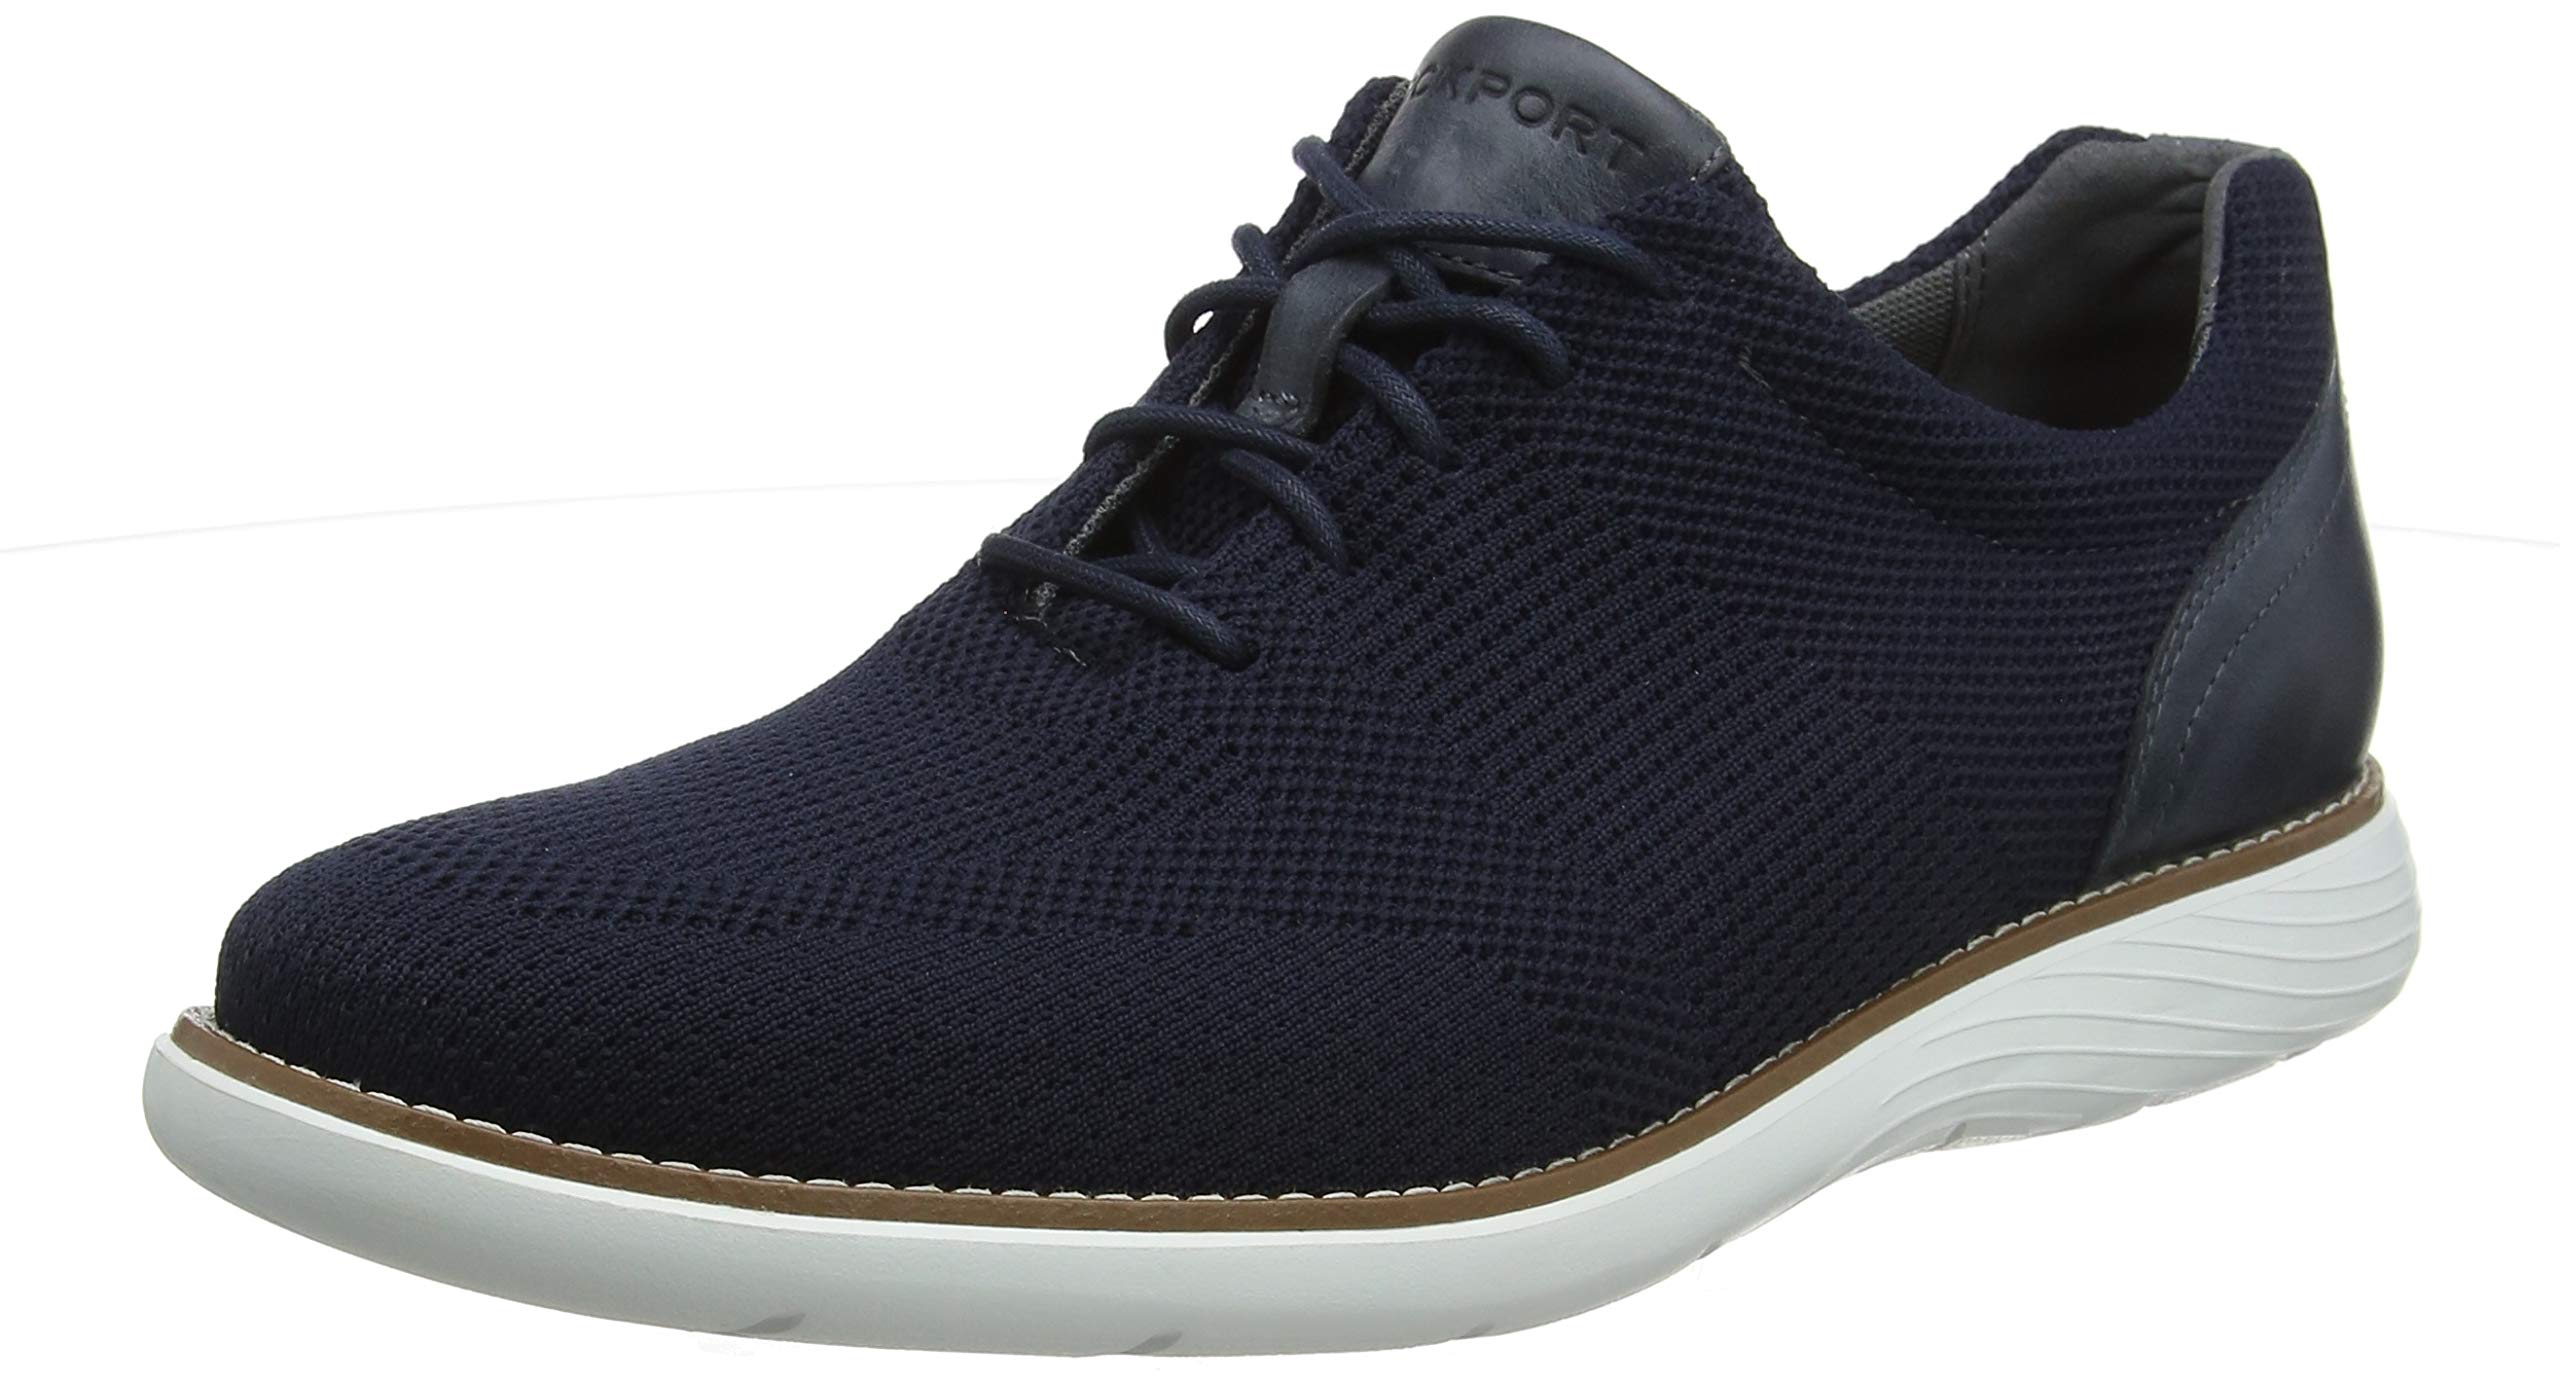 Mesh Lace Garett Dress Eu Rockport 00146 UpDerbys Blues HommeBleunew lFK31ucTJ